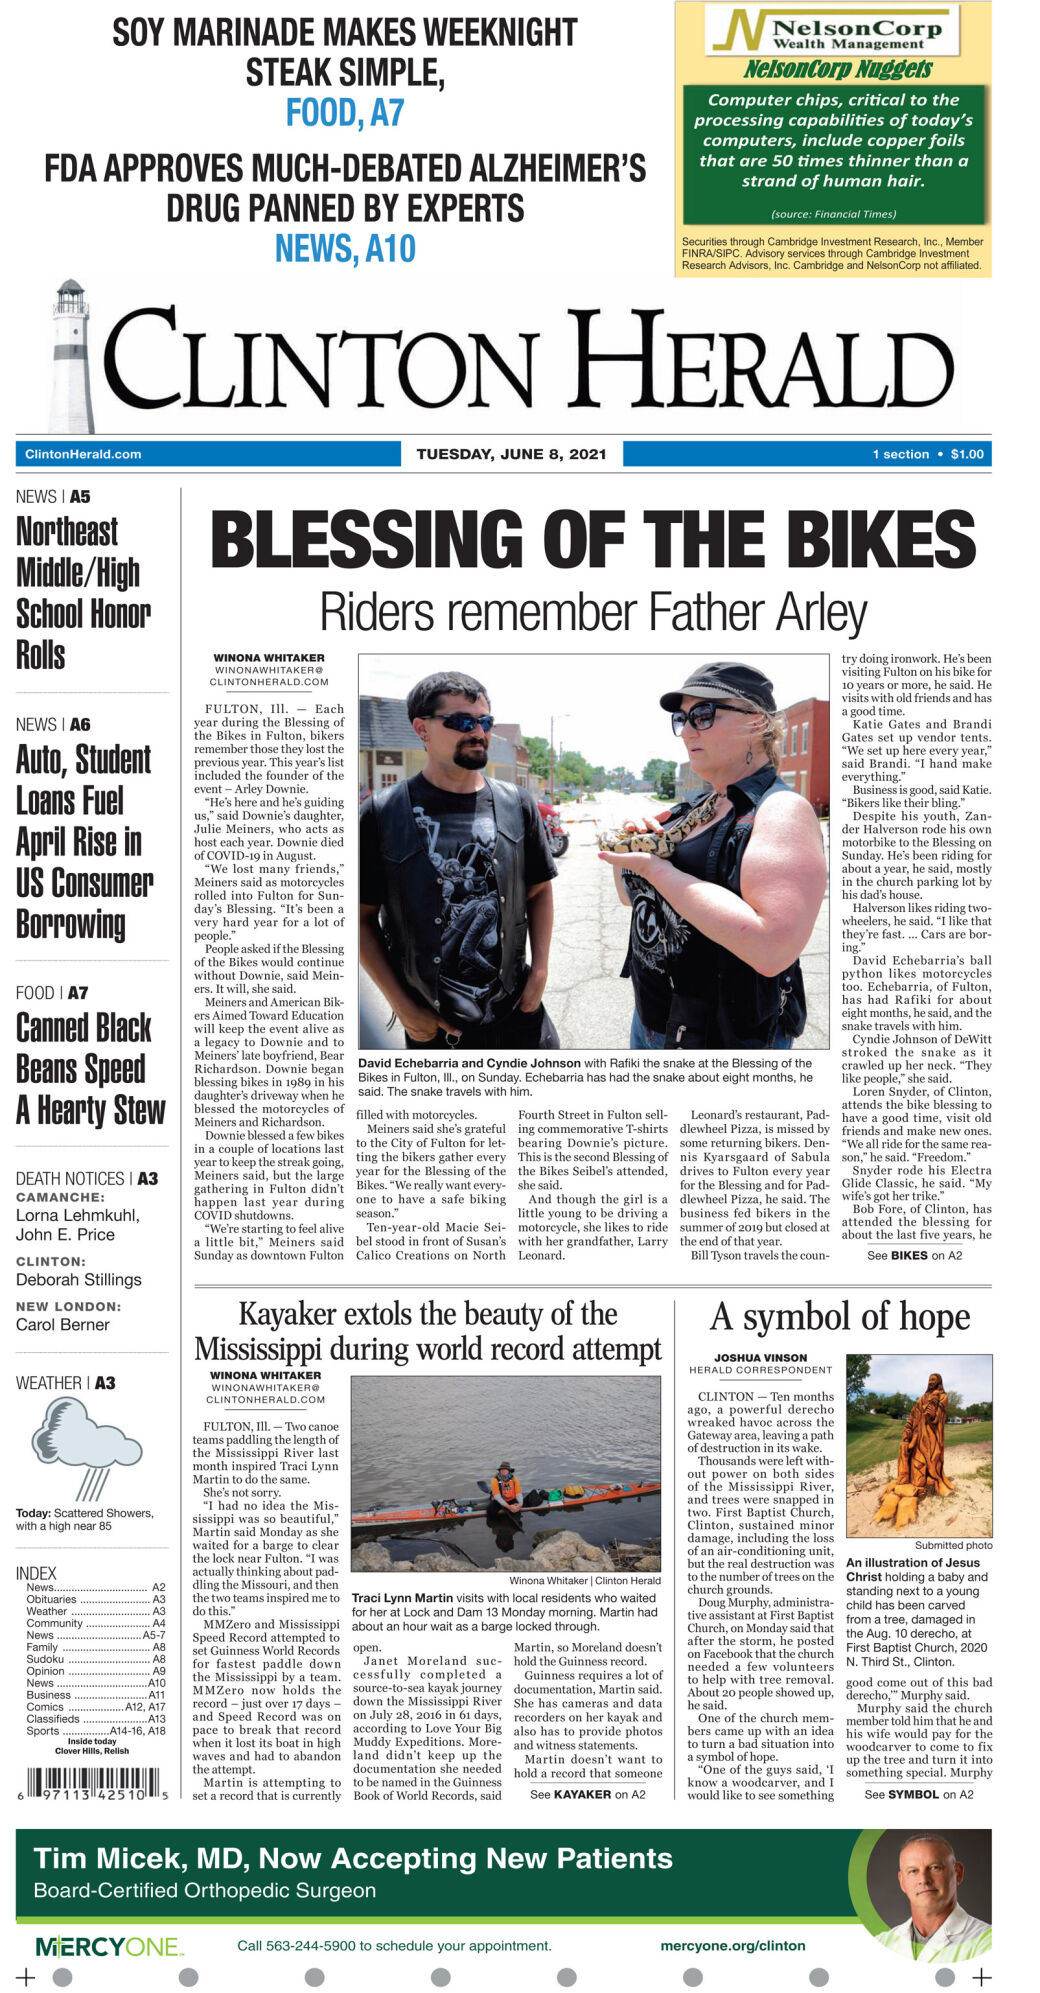 June 8, 2021 Front page